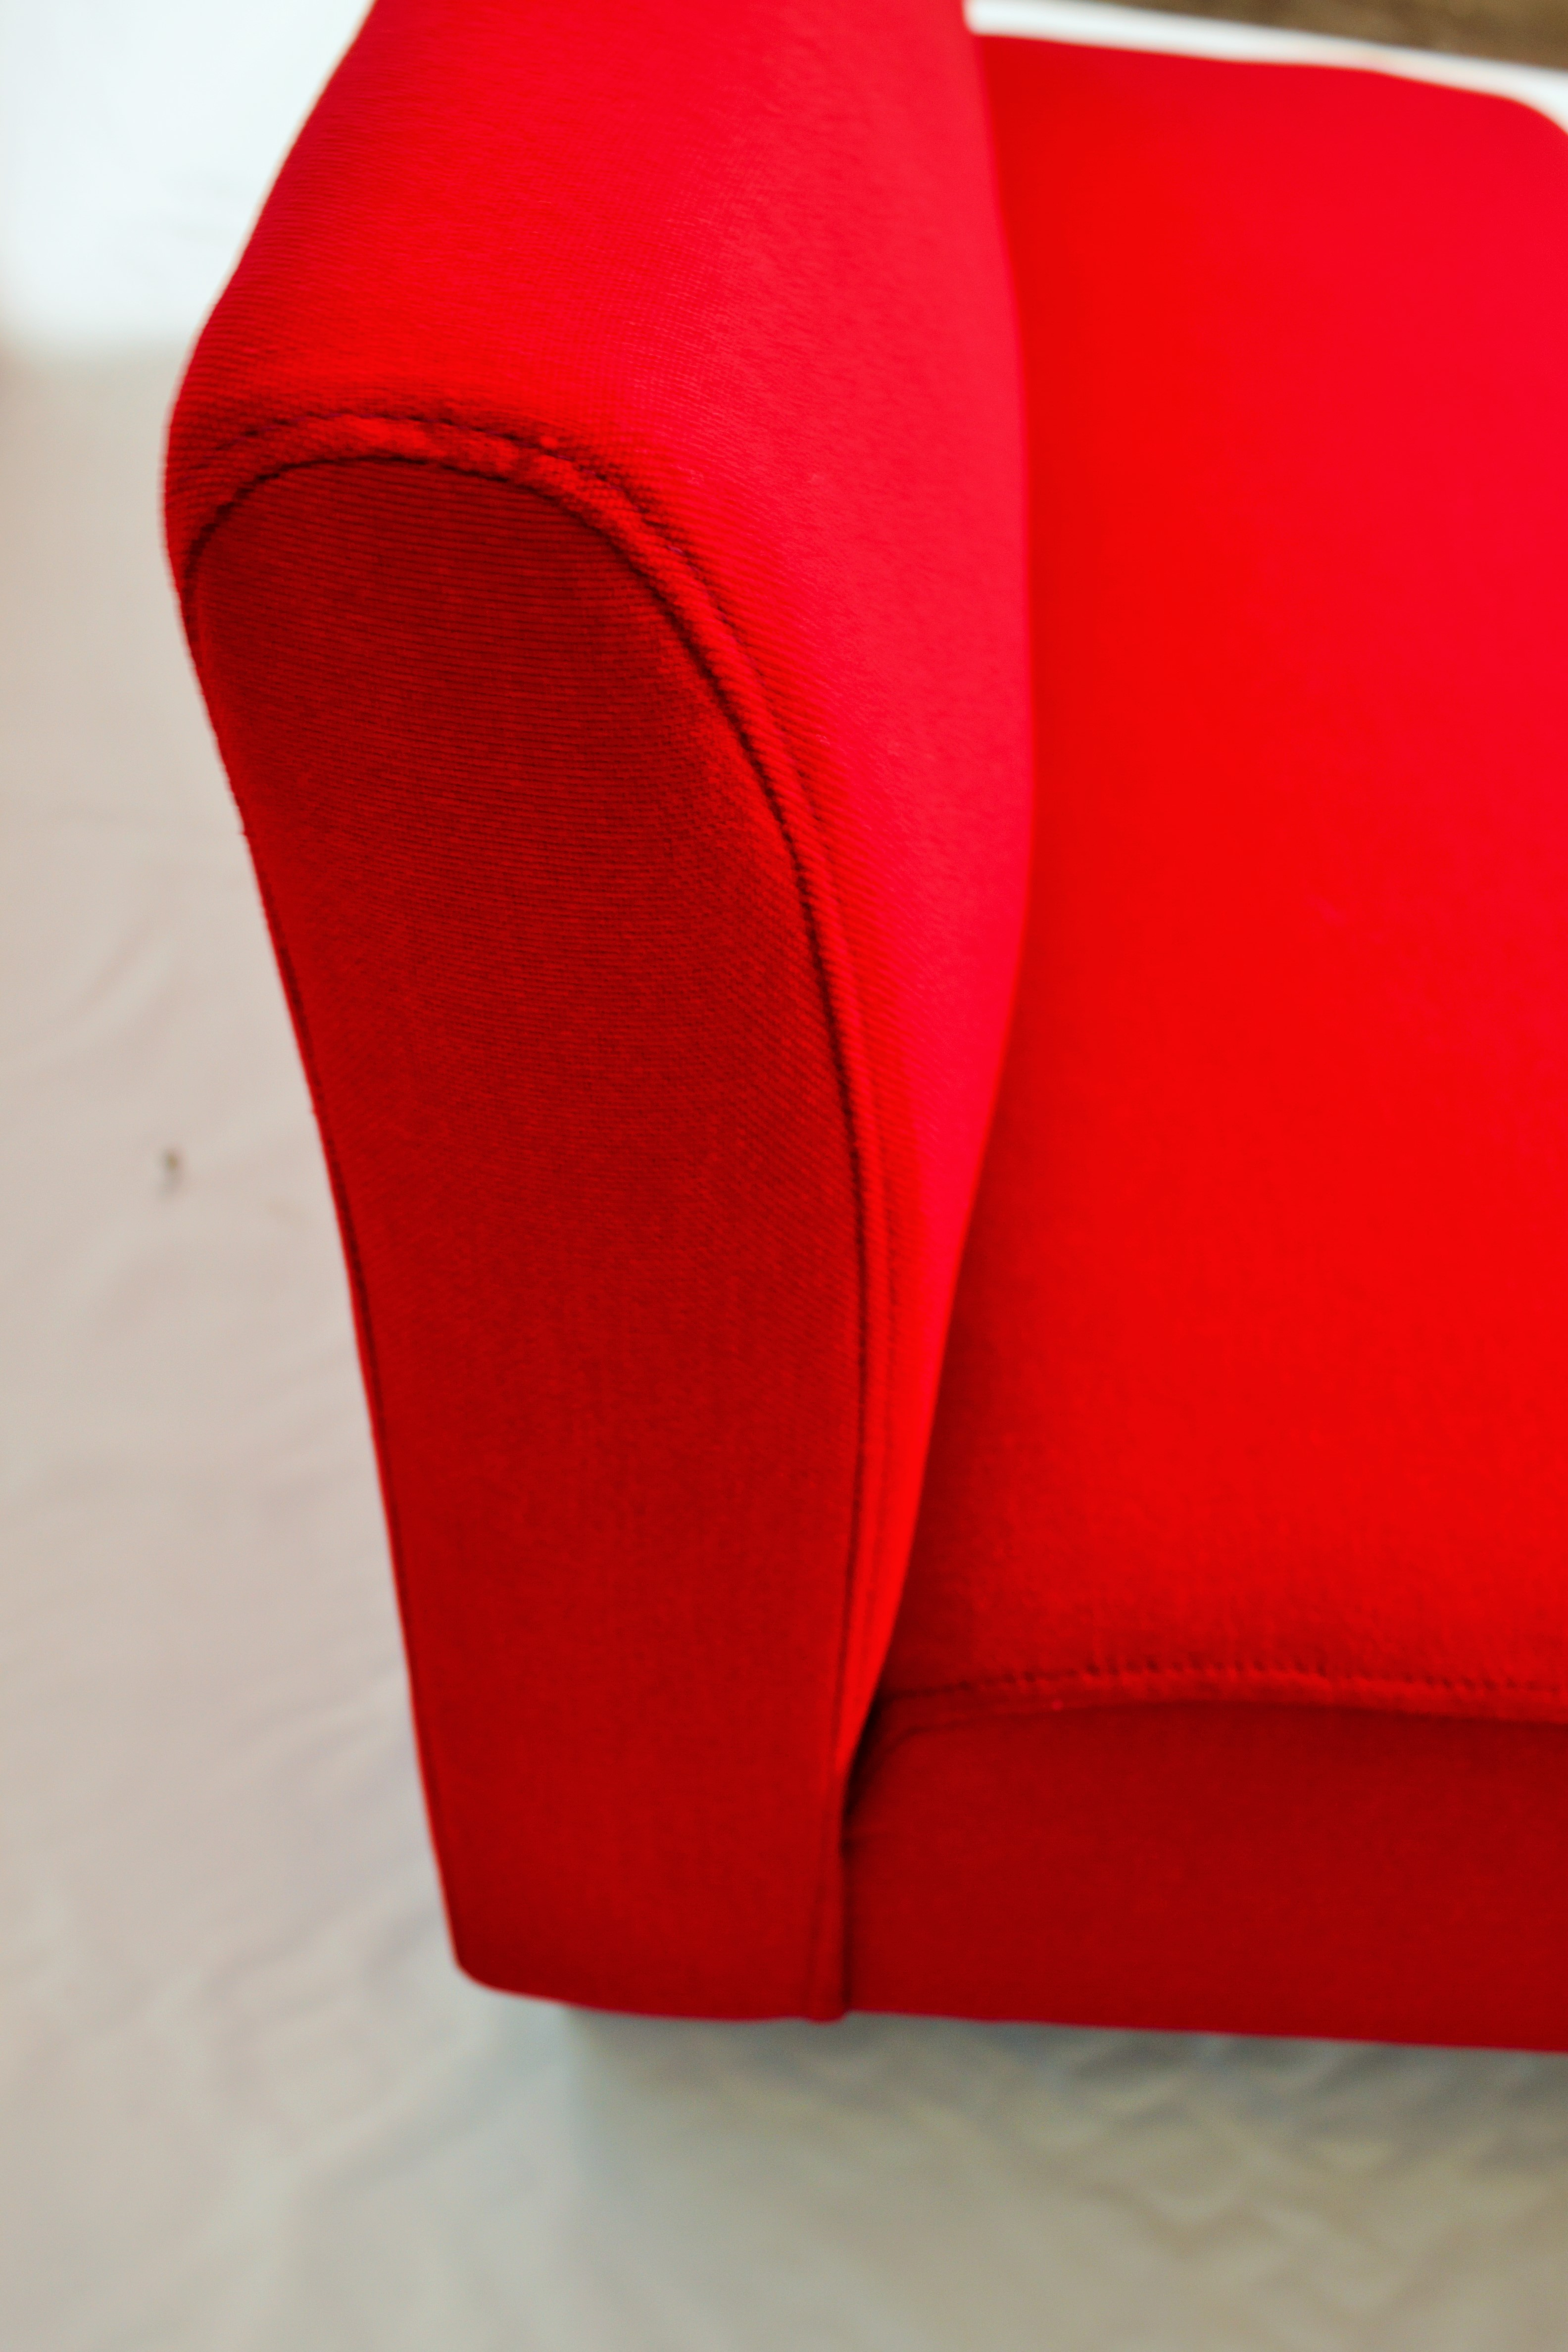 Red Sofa Arm